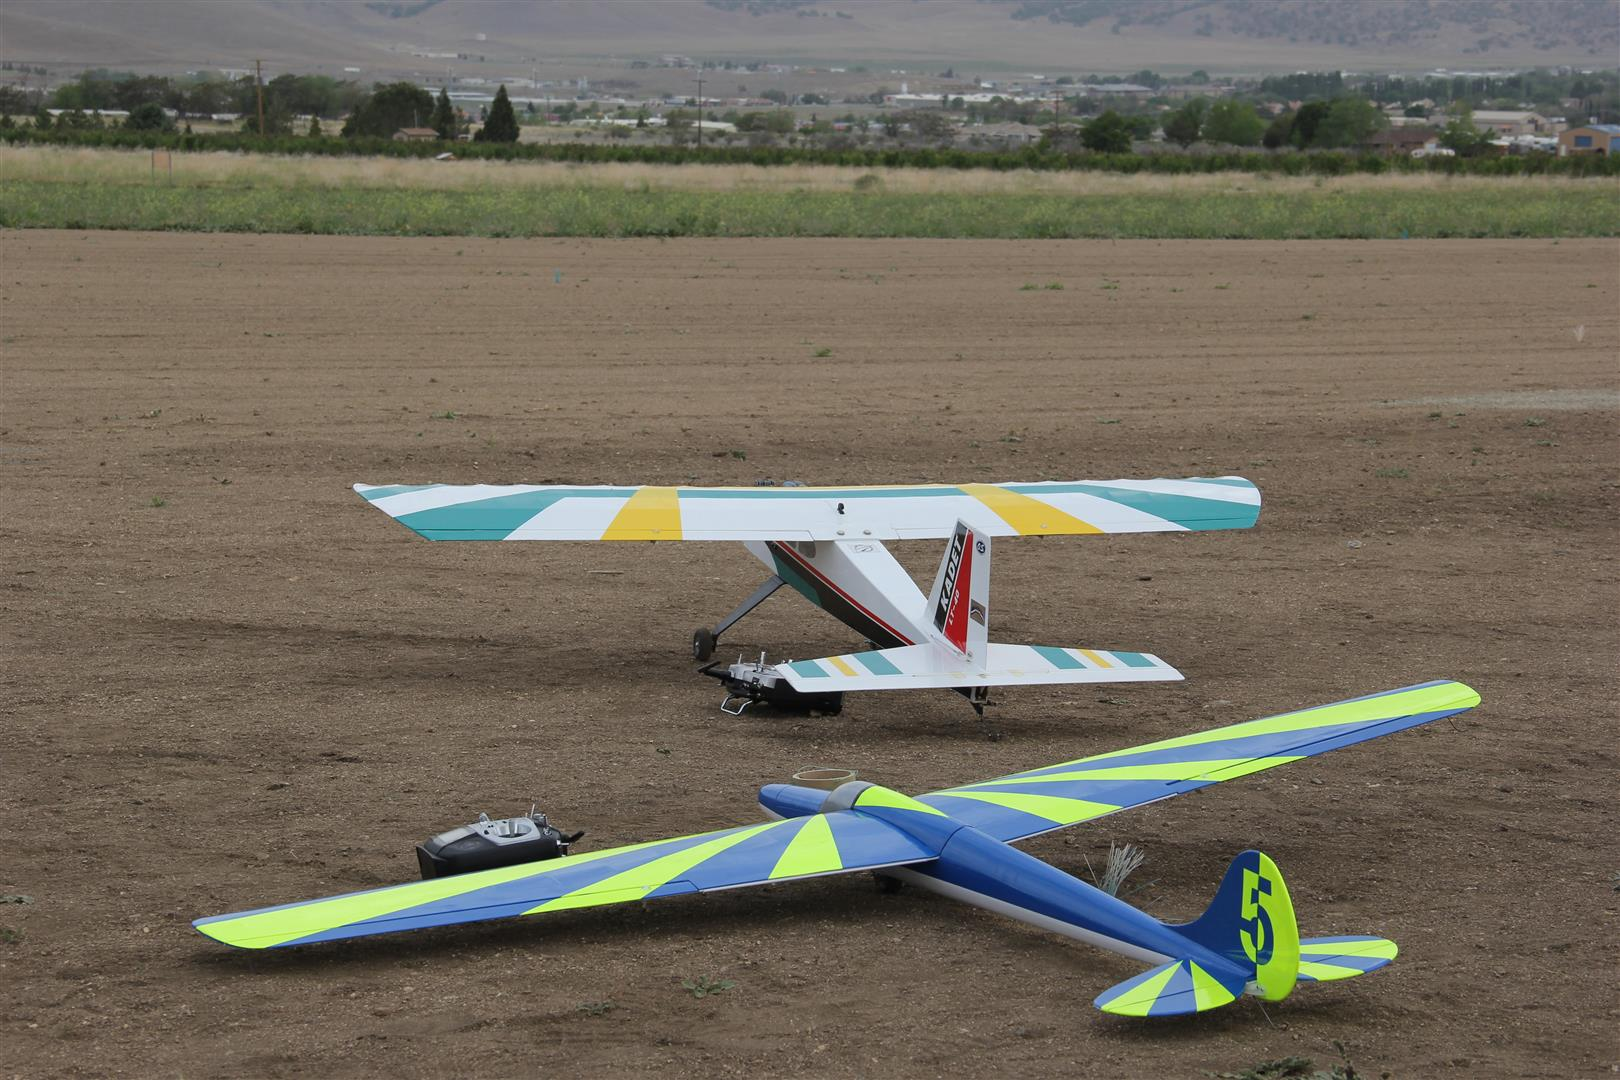 I live a few miles from the Mountain Valley Airport in Tehachapi, CA. Mountain Valley is home to a glider school and lots of glider flying.